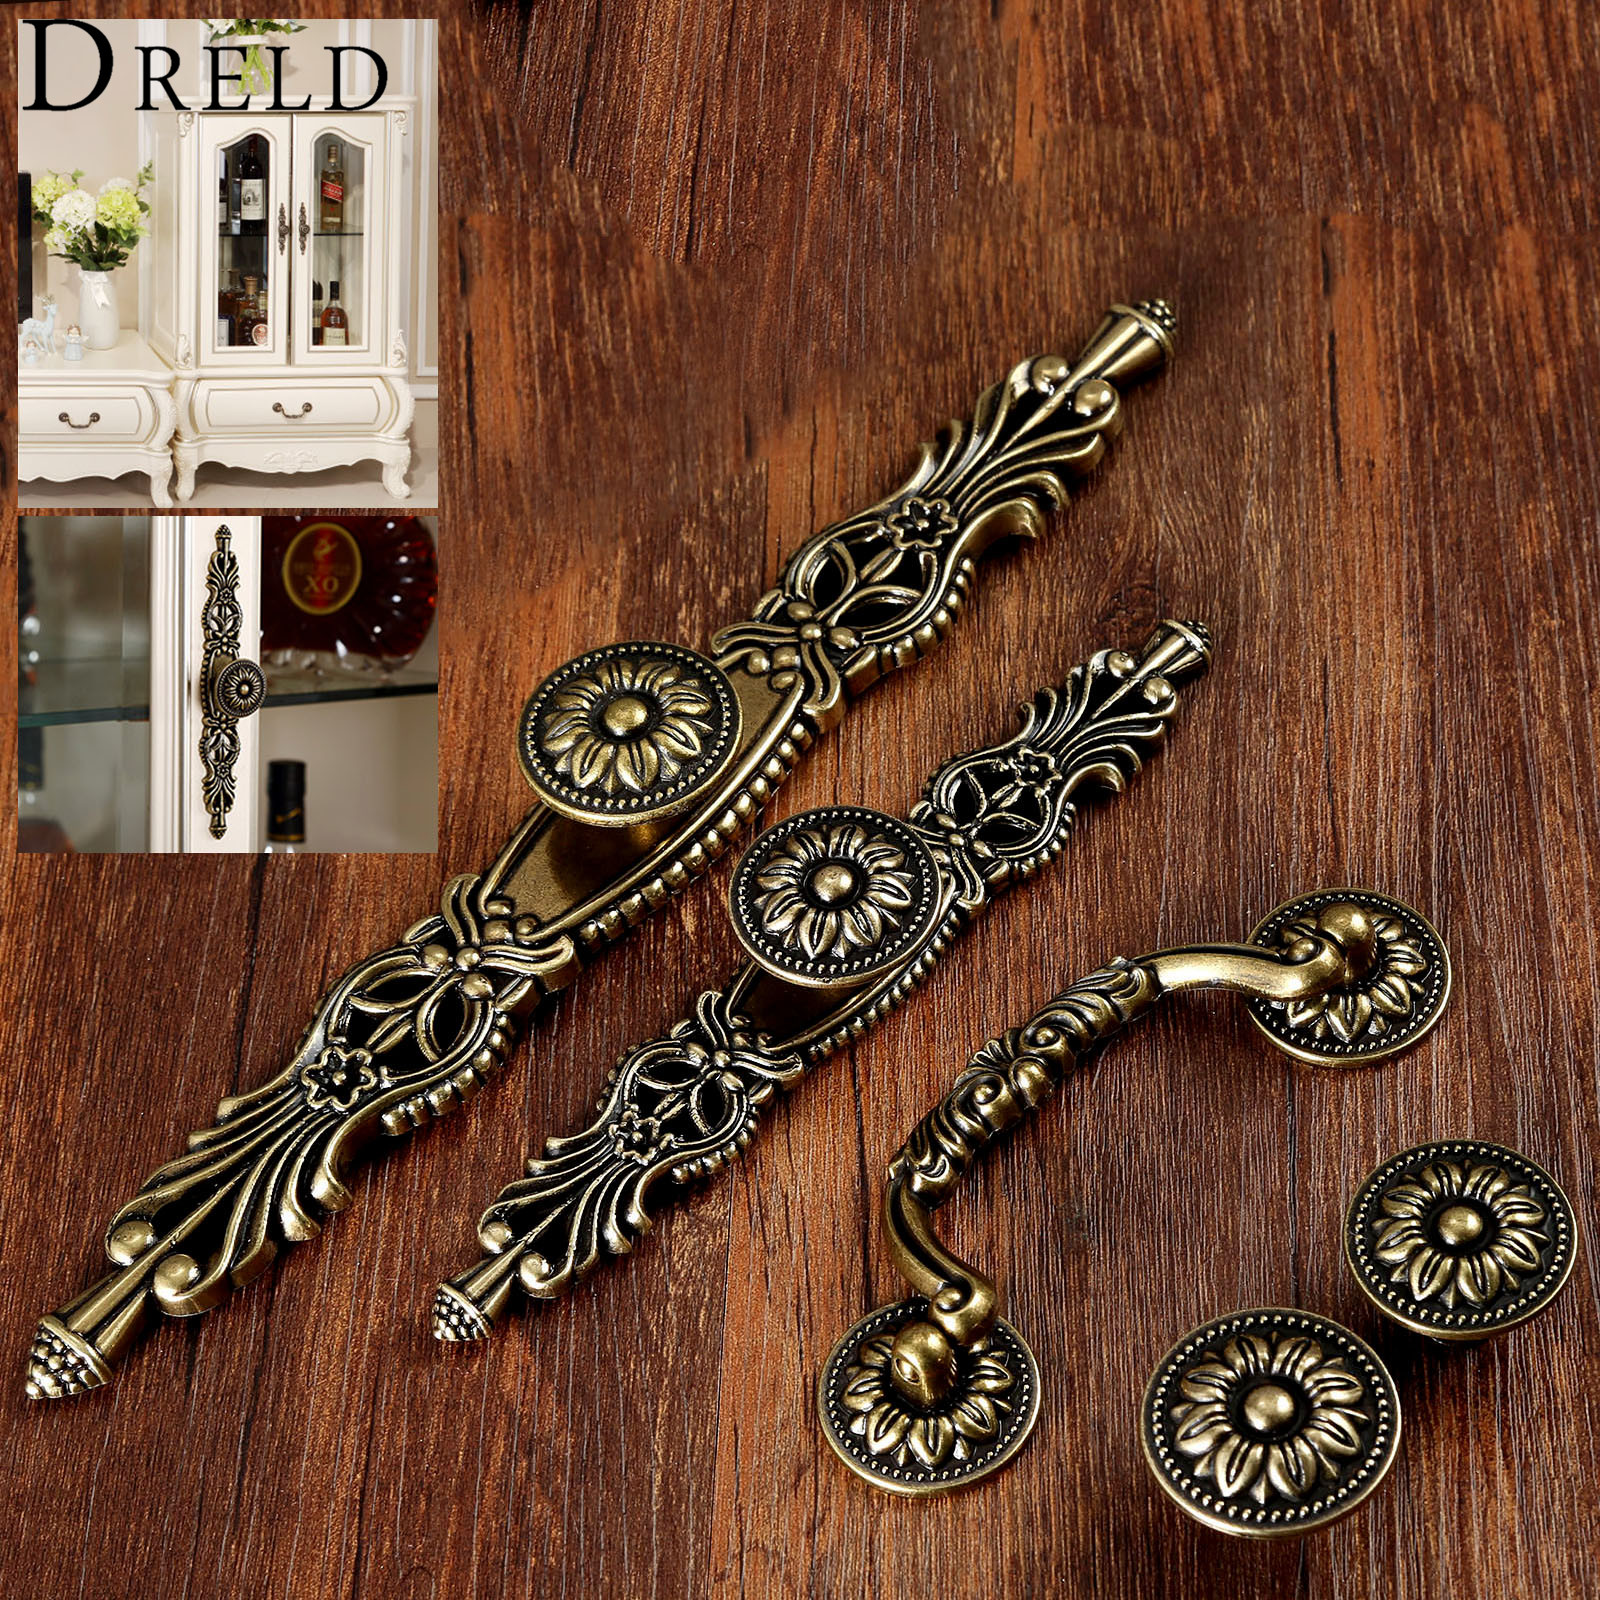 DRELD Antique Furniture Handle Vintage Cabinet Knobs and Handles Wardrobe Cupboard Drawer Kitchen Pull Knob Furniture Hareware 6pcs bronze chinese door handle wardrobe handle kitchen knobs cabinet hardware vintage handles decorative knob asas para cajones